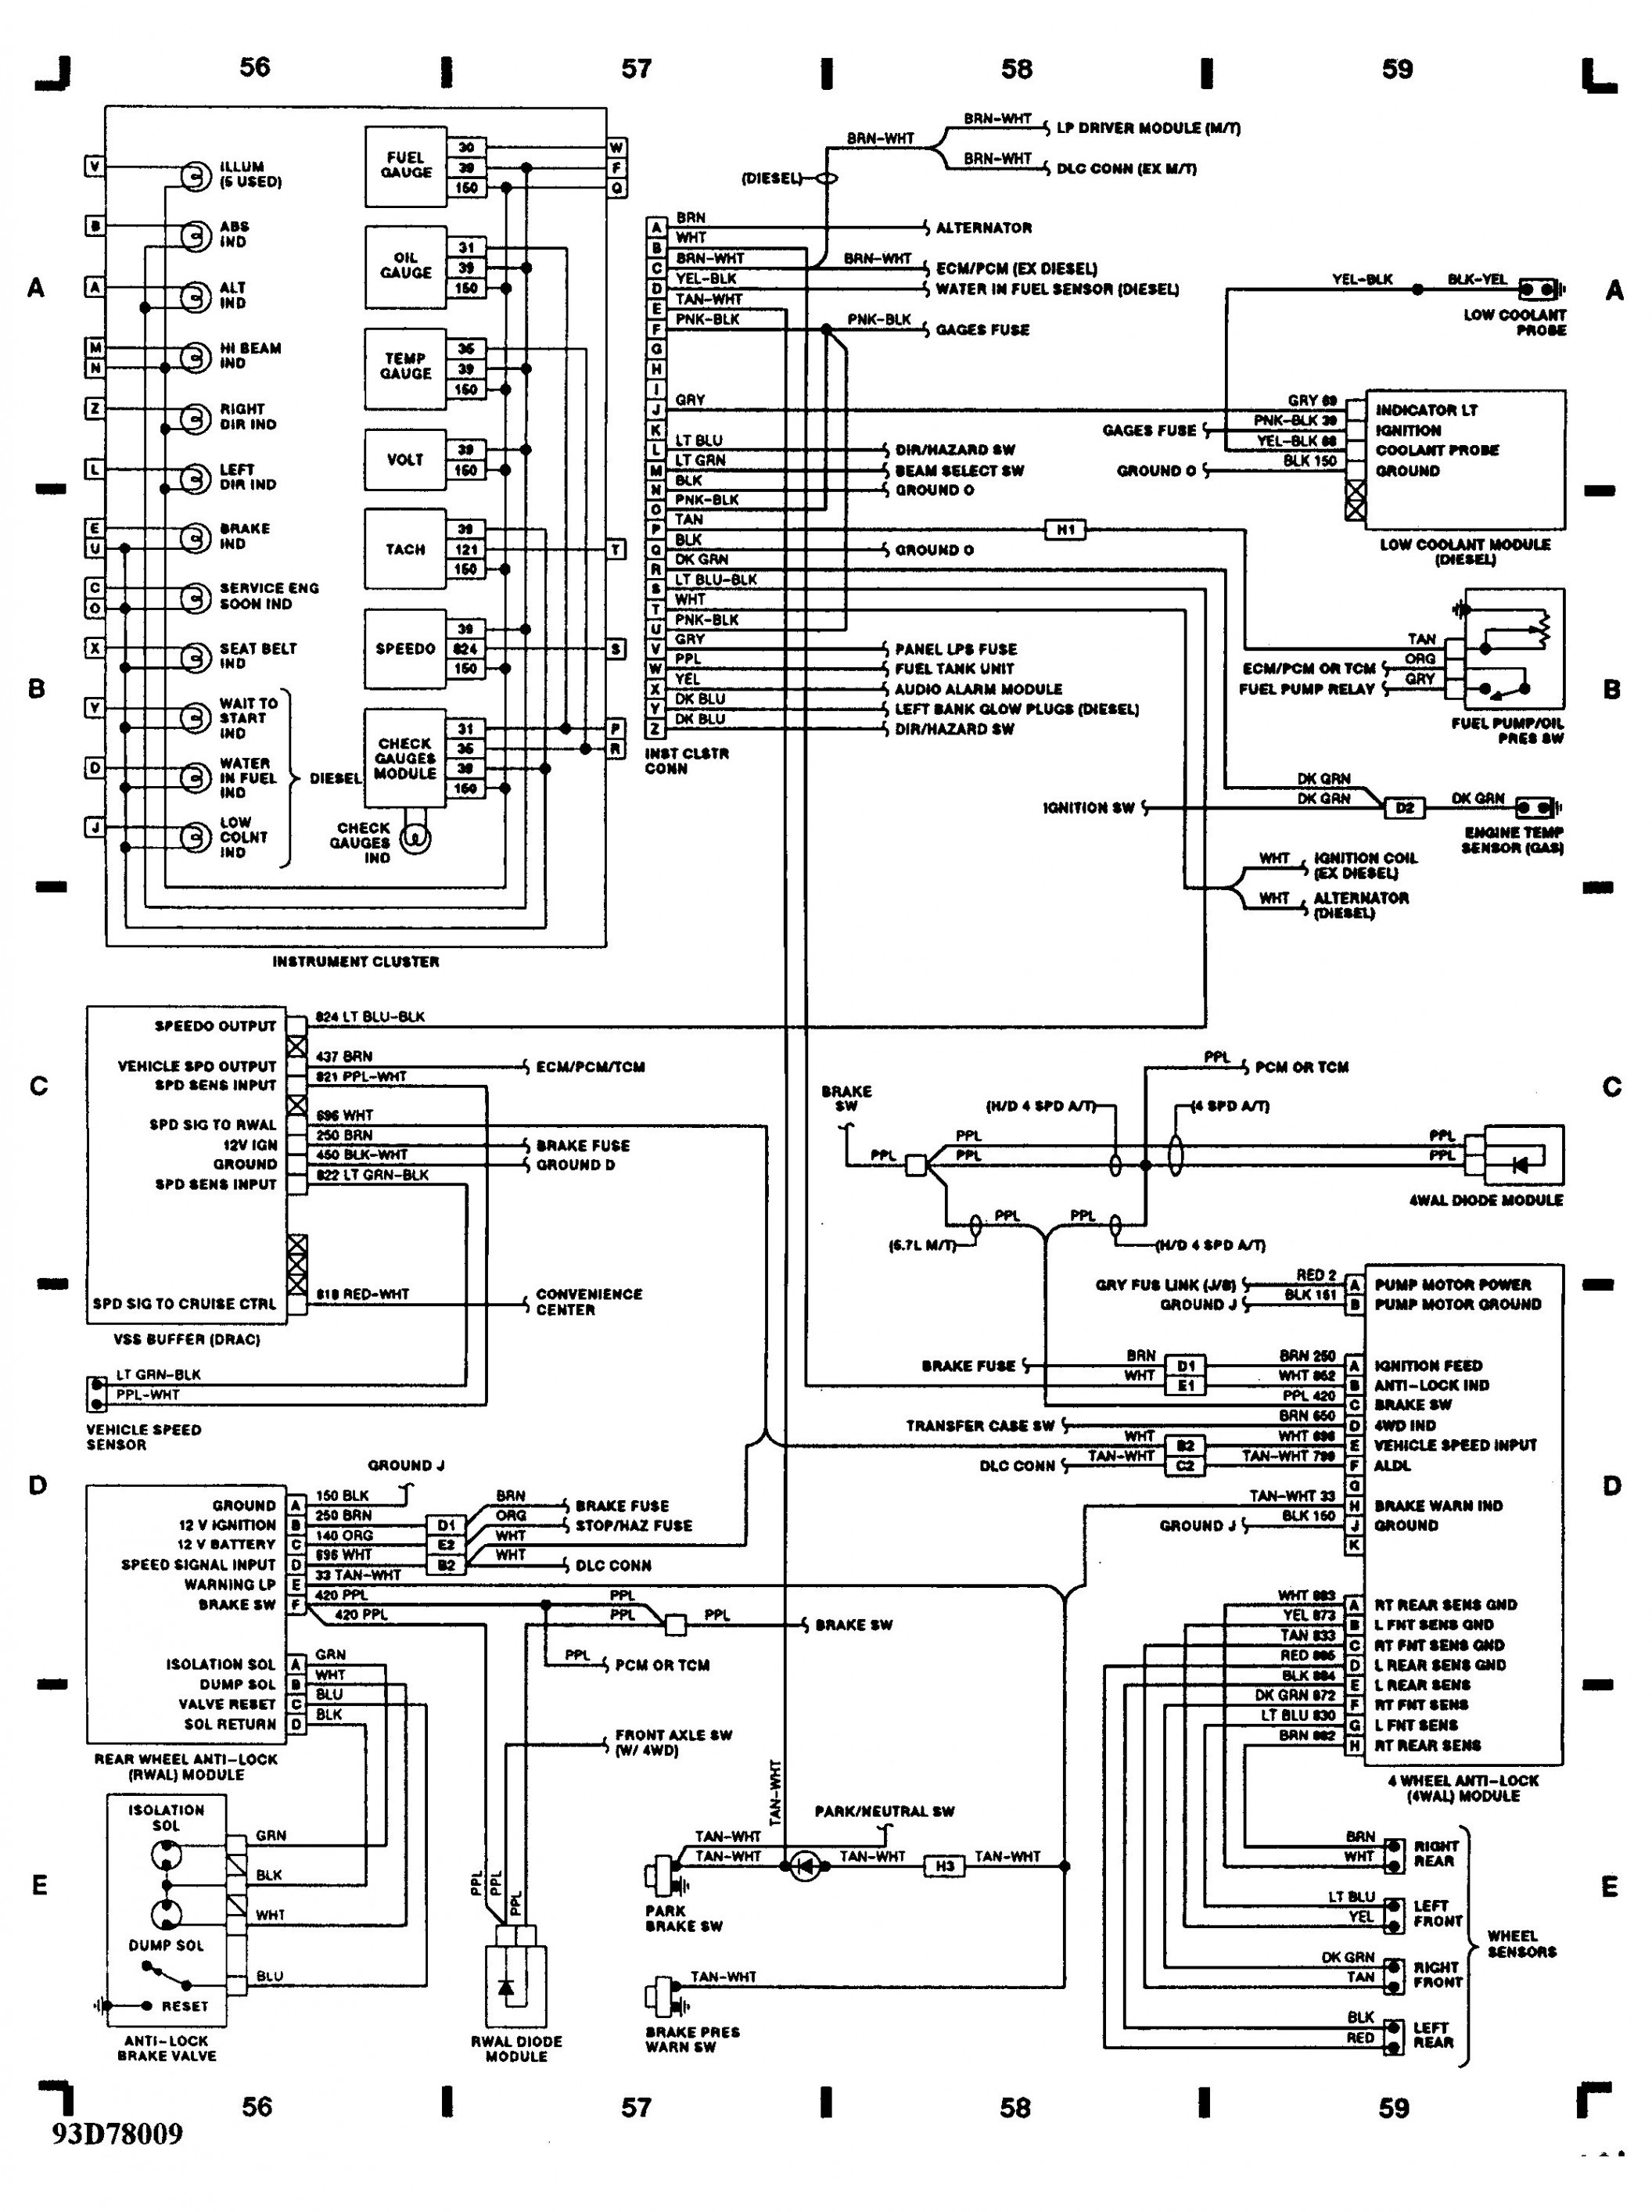 4.3 Vortec Spider Injector Wiring Diagram Unique 4 3 Vortec Spider - 4.3 Vortec Wiring Diagram